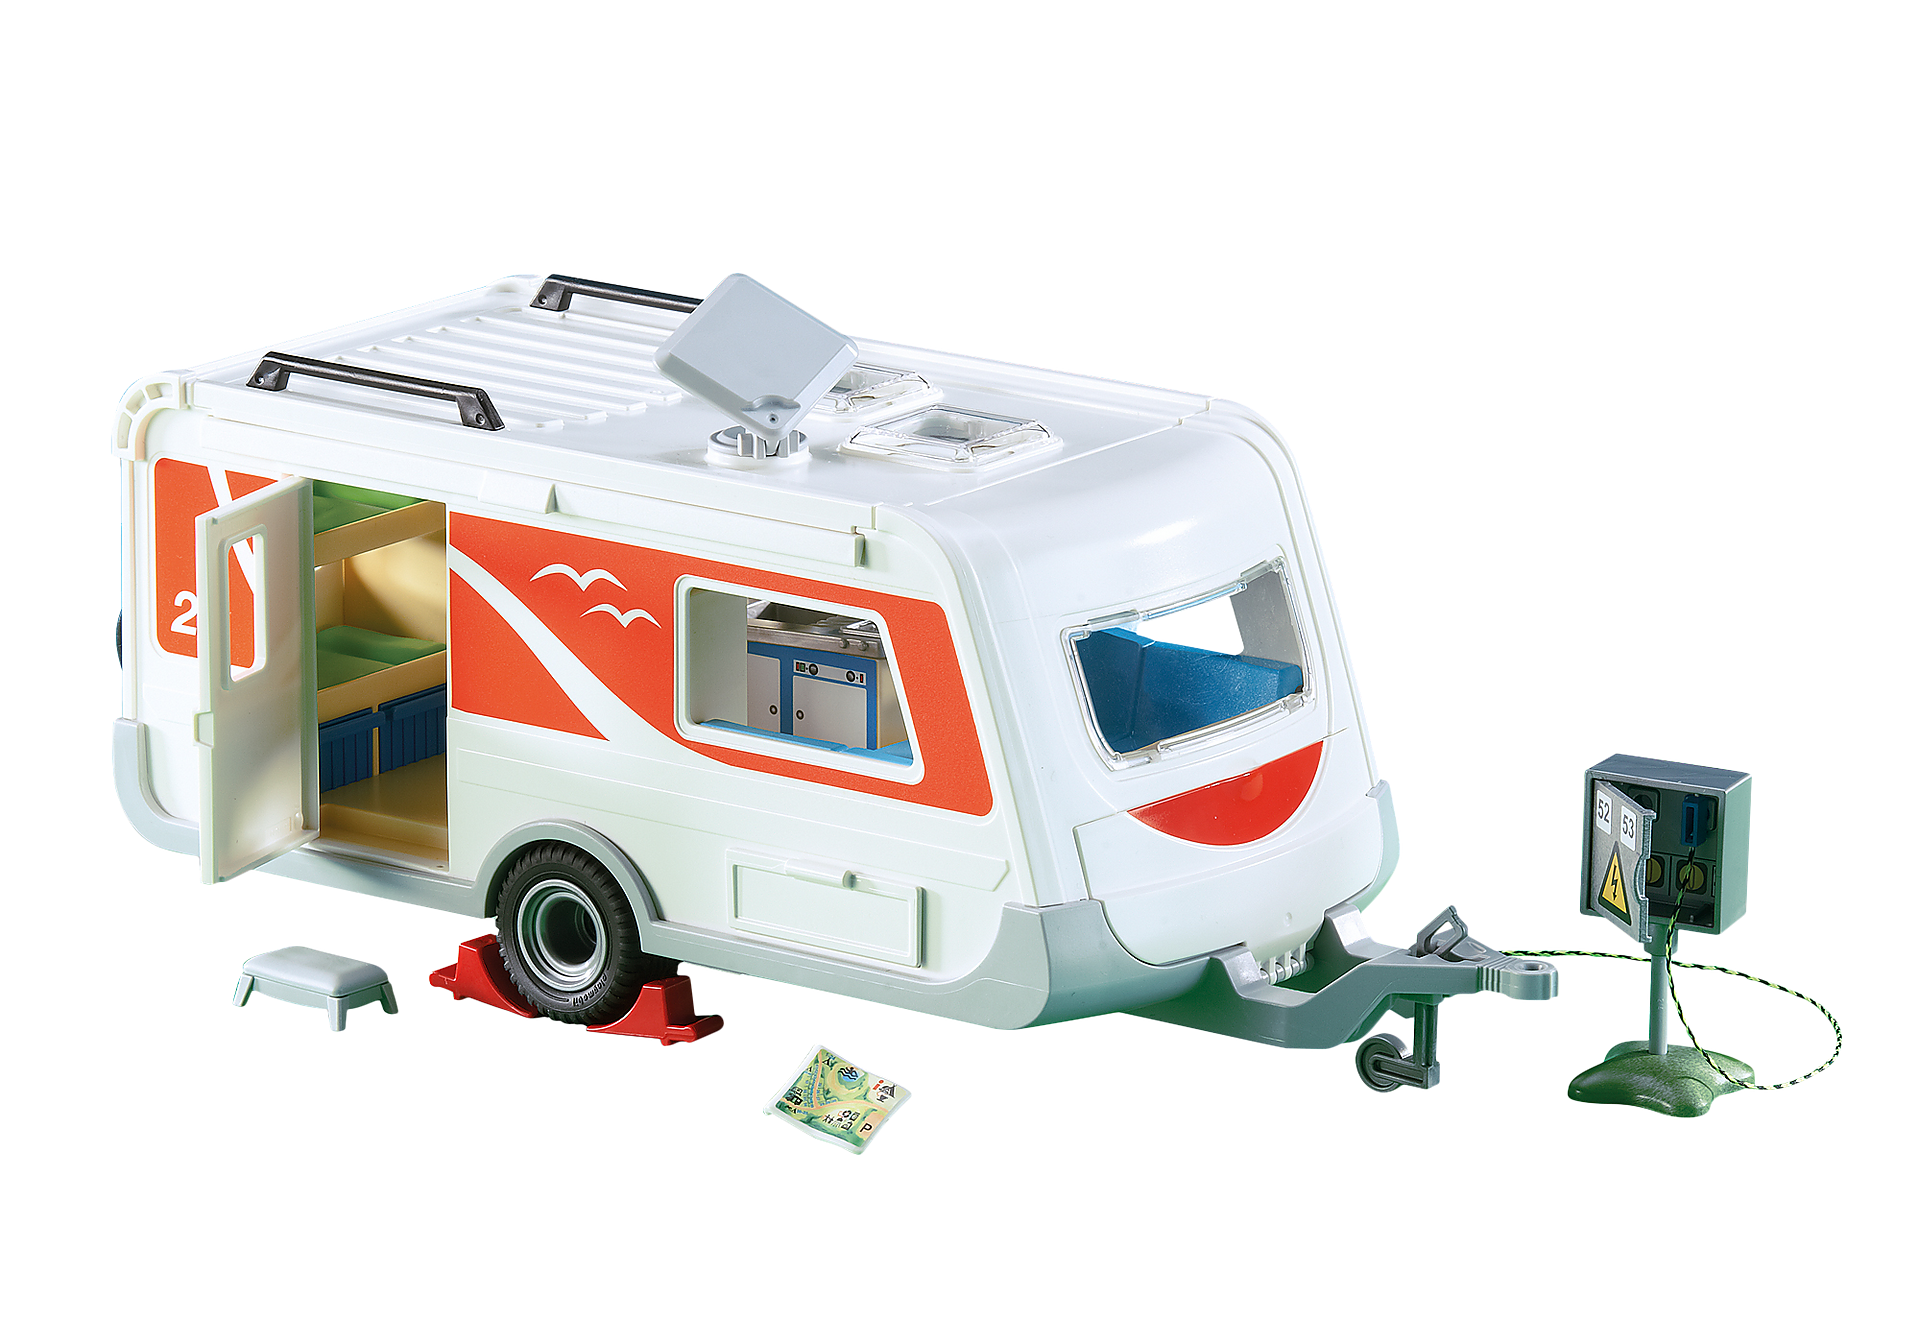 http://media.playmobil.com/i/playmobil/6513_product_detail/Caravan